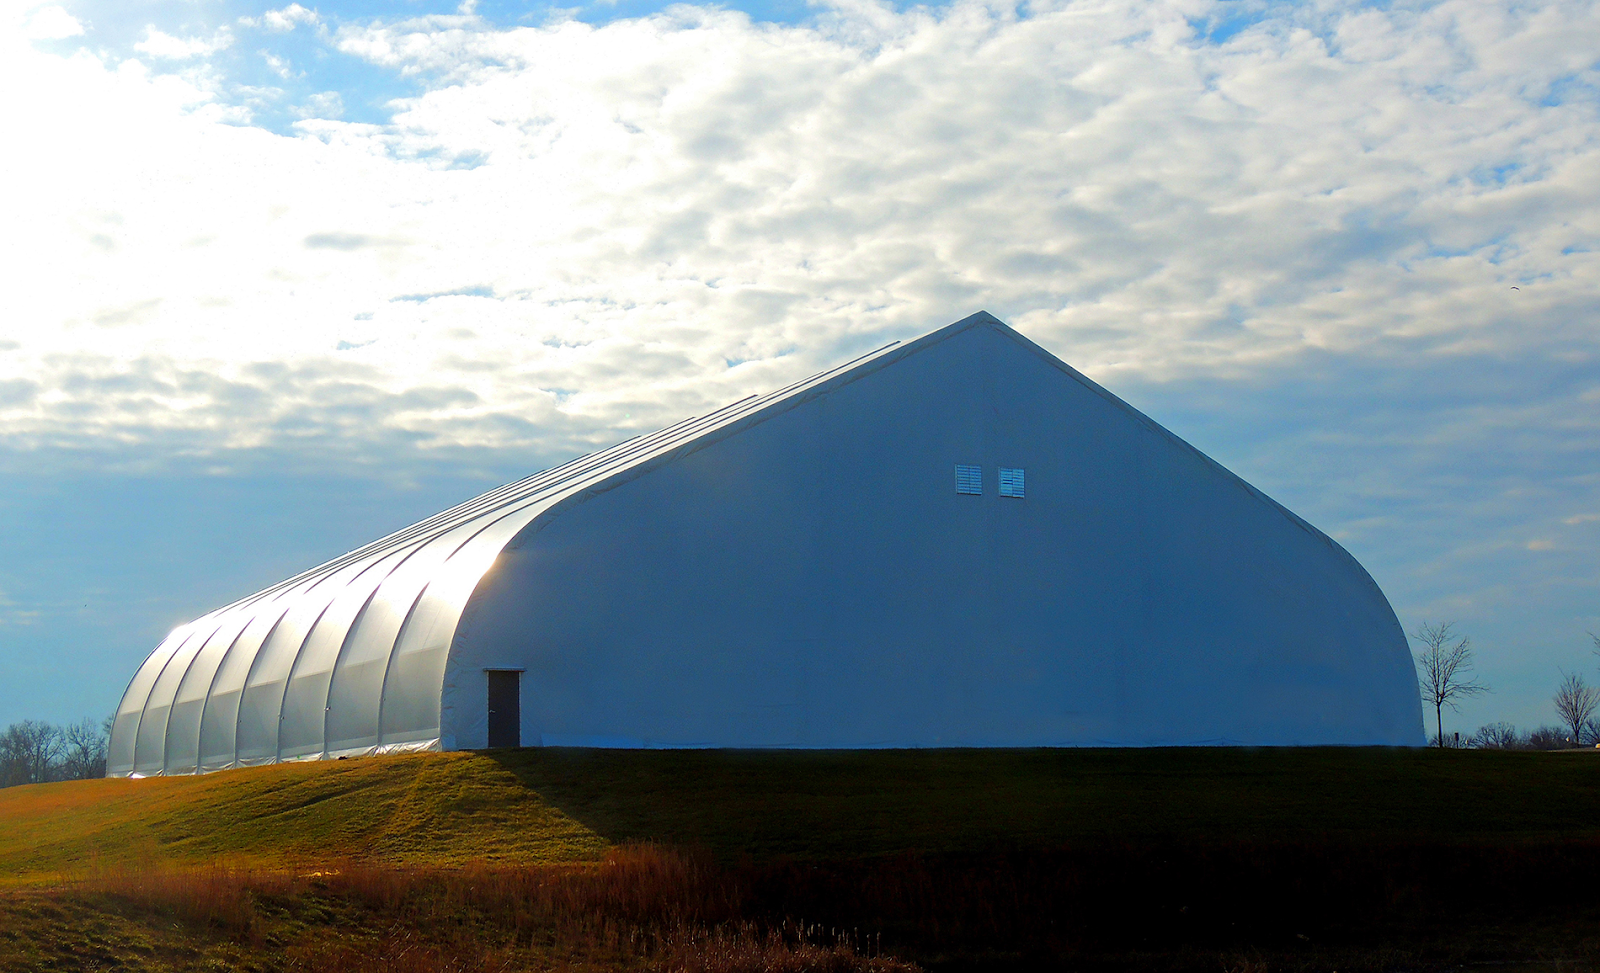 Exterior of tension fabric building housing cannabis crop in open field